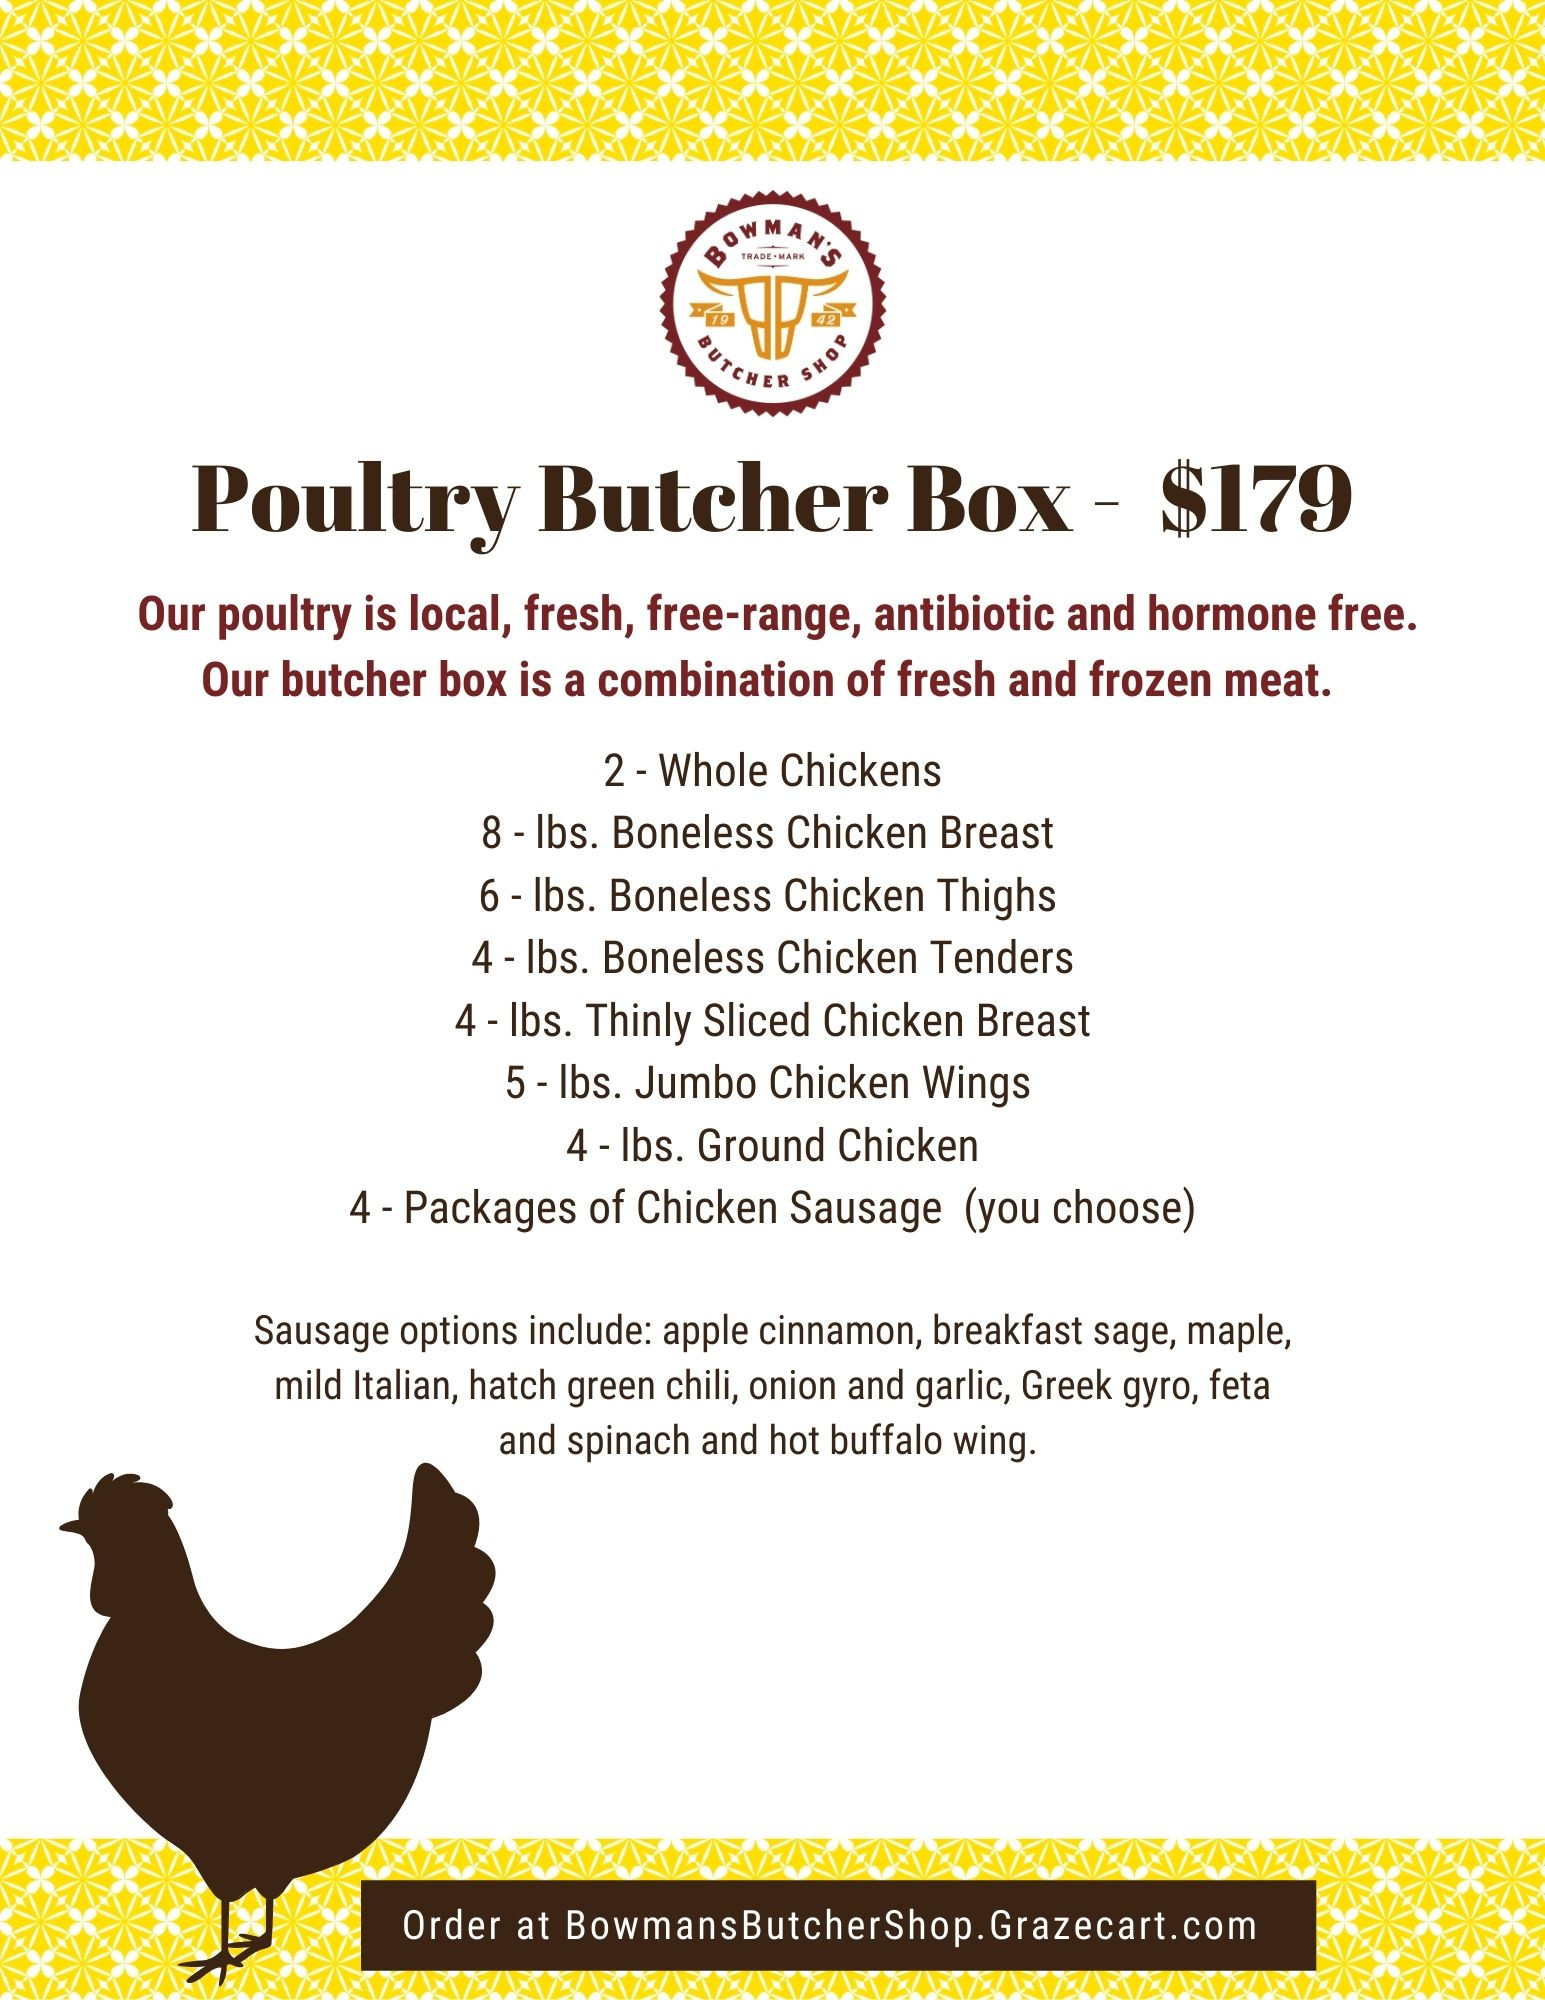 Fill Your Freezer - Poultry Butcher Box